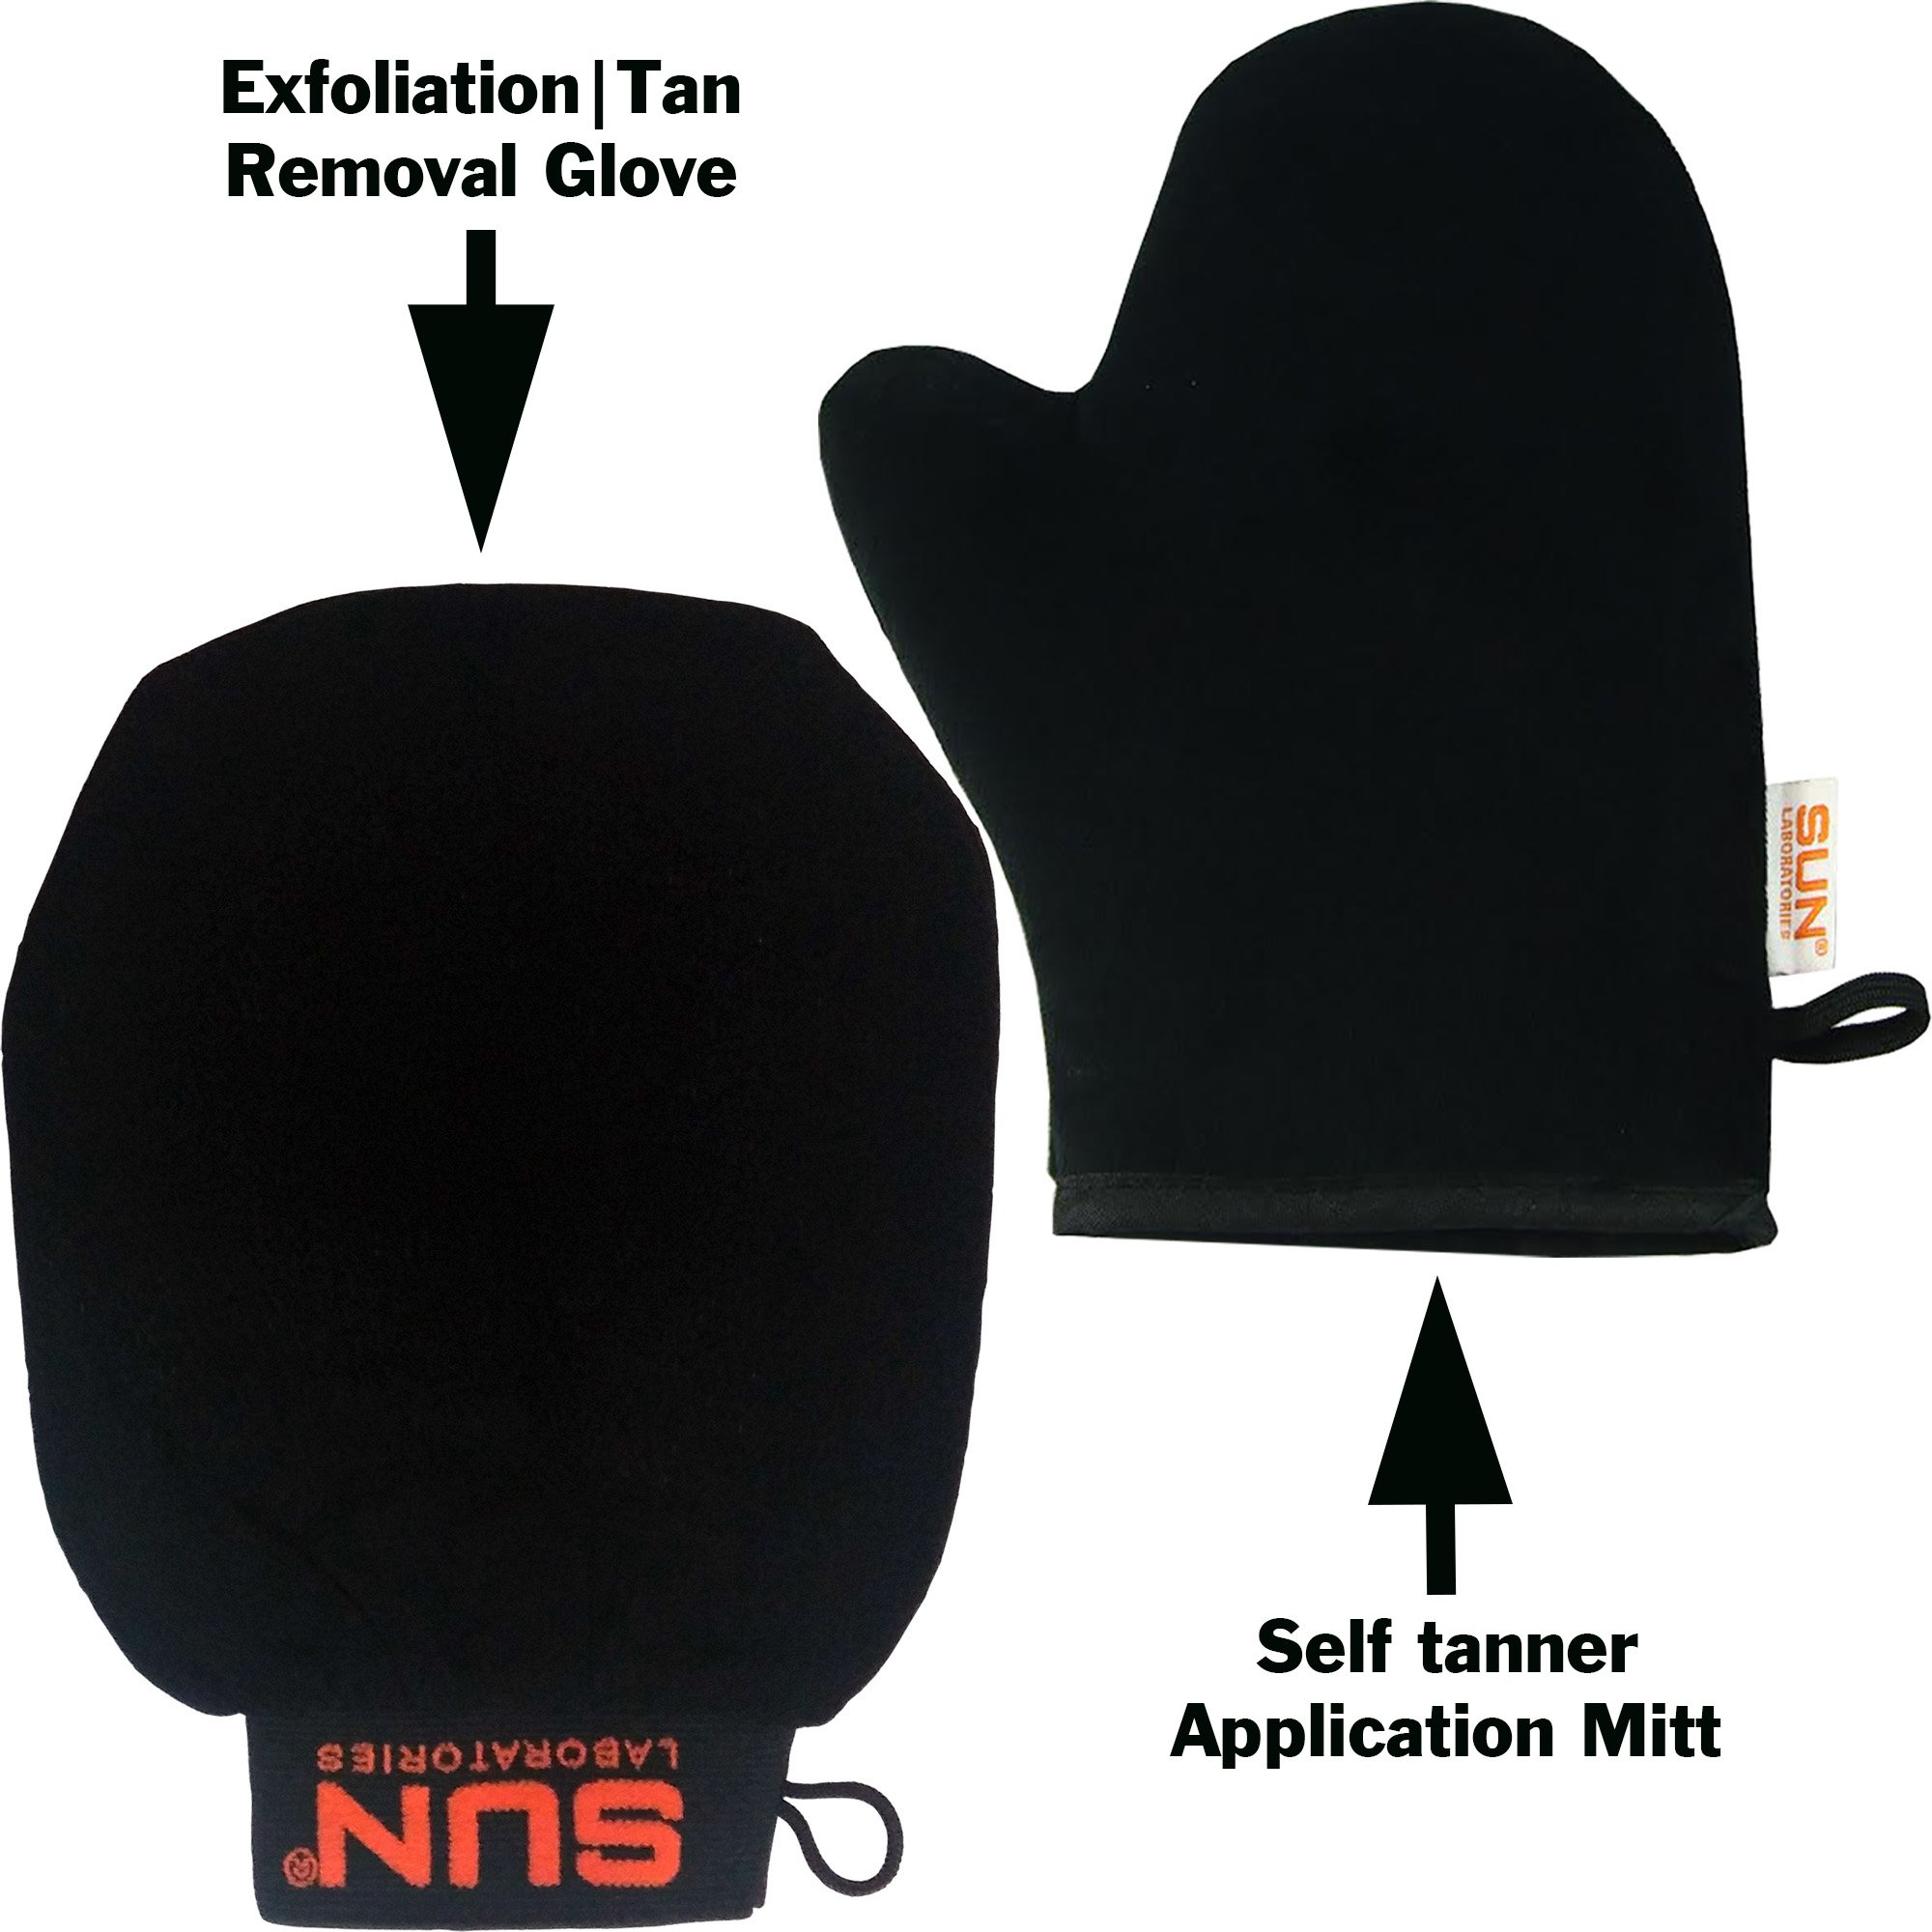 Self Tanner Application Mitt + Body Exfoliation Glove Tan Remover And Pre Tan Prep - Use these Products To Get A Perfict Self Tan Every Time | Sunless Tanning Cream Applicator Mitt